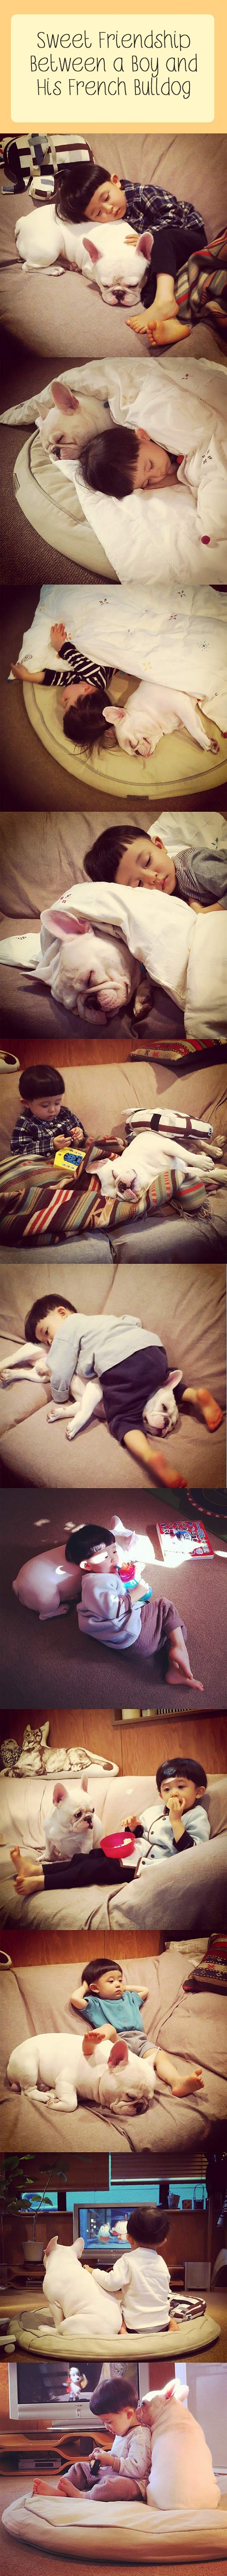 Sweet friendship between a boy and his french bulldog.